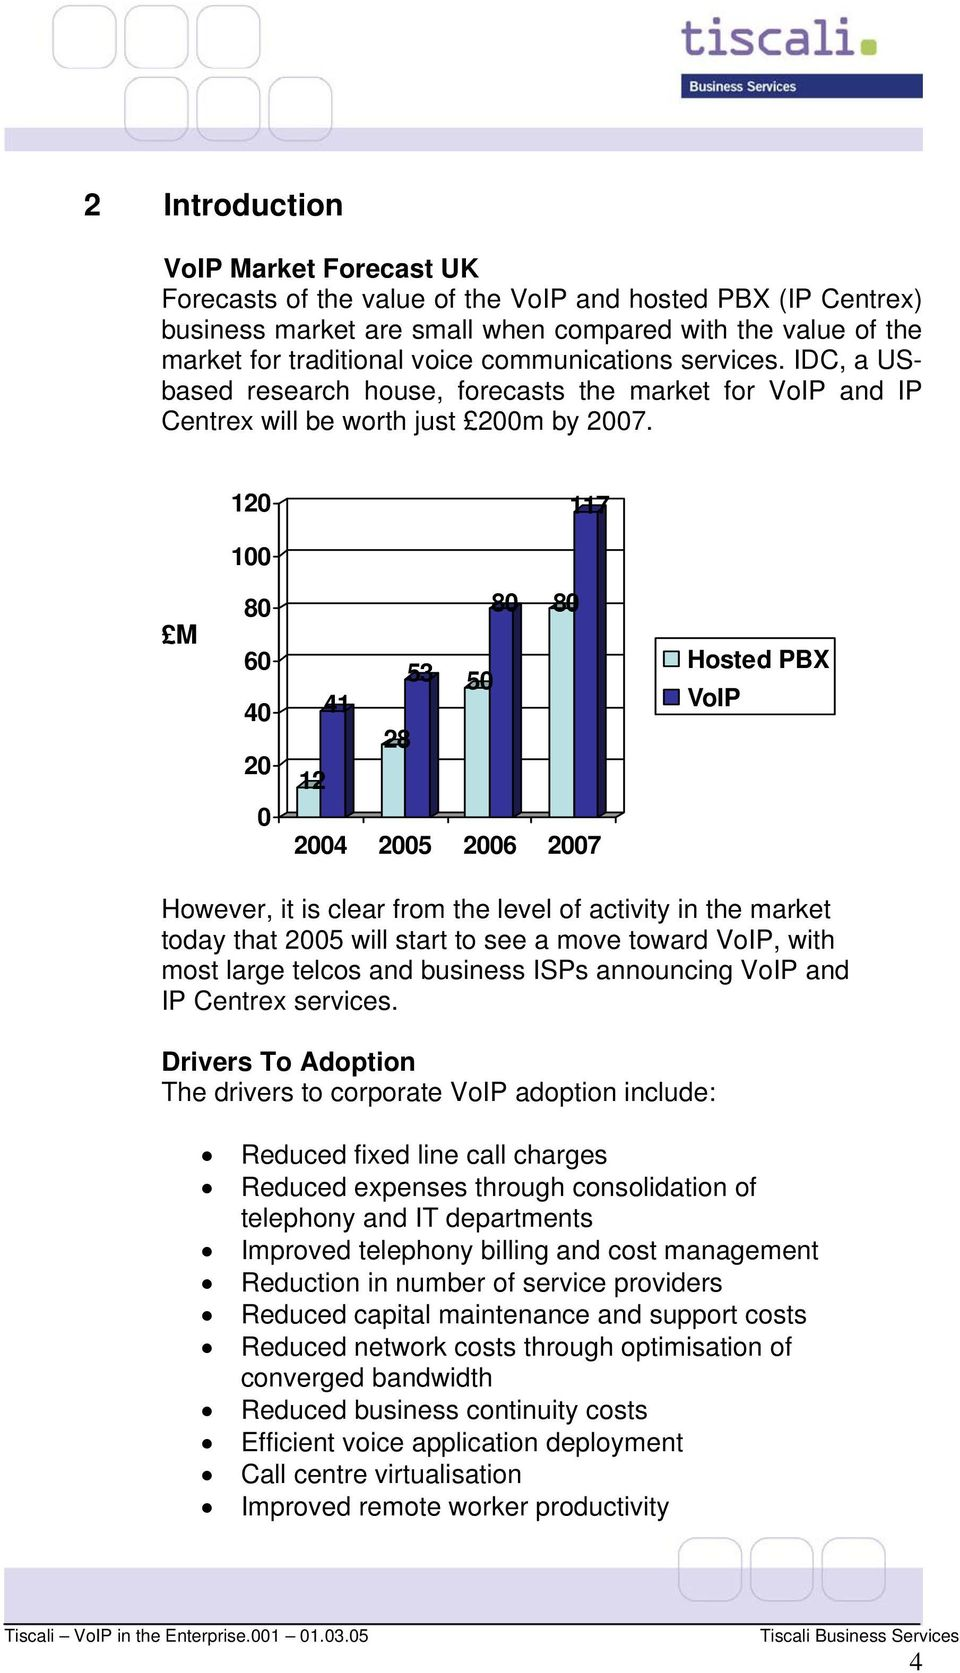 120 117 100 M 80 60 40 20 0 80 80 53 41 50 28 12 2004 2005 2006 2007 Hosted PBX VoIP However, it is clear from the level of activity in the market today that 2005 will start to see a move toward